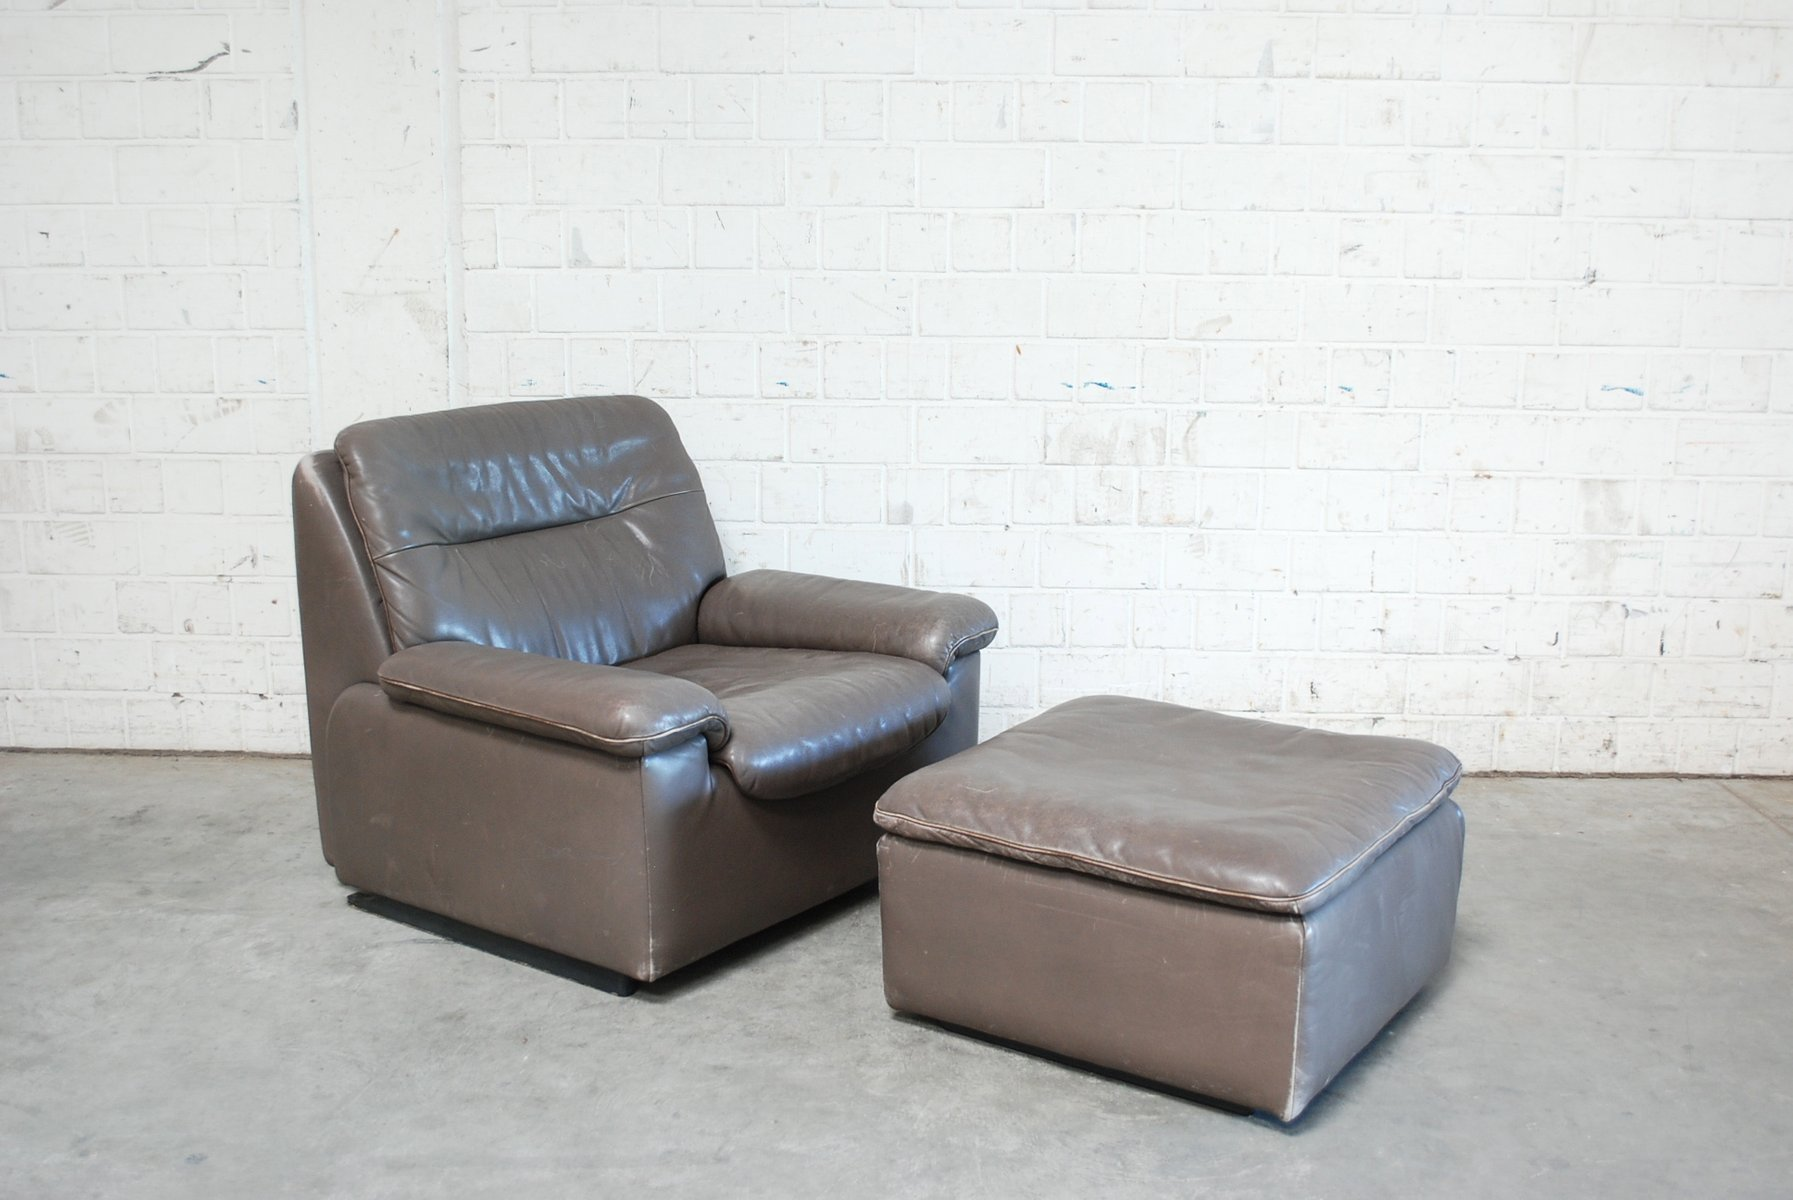 Superb Swiss Grey Leather Lounge Chair U0026 Ottoman From De Sede, 1980s